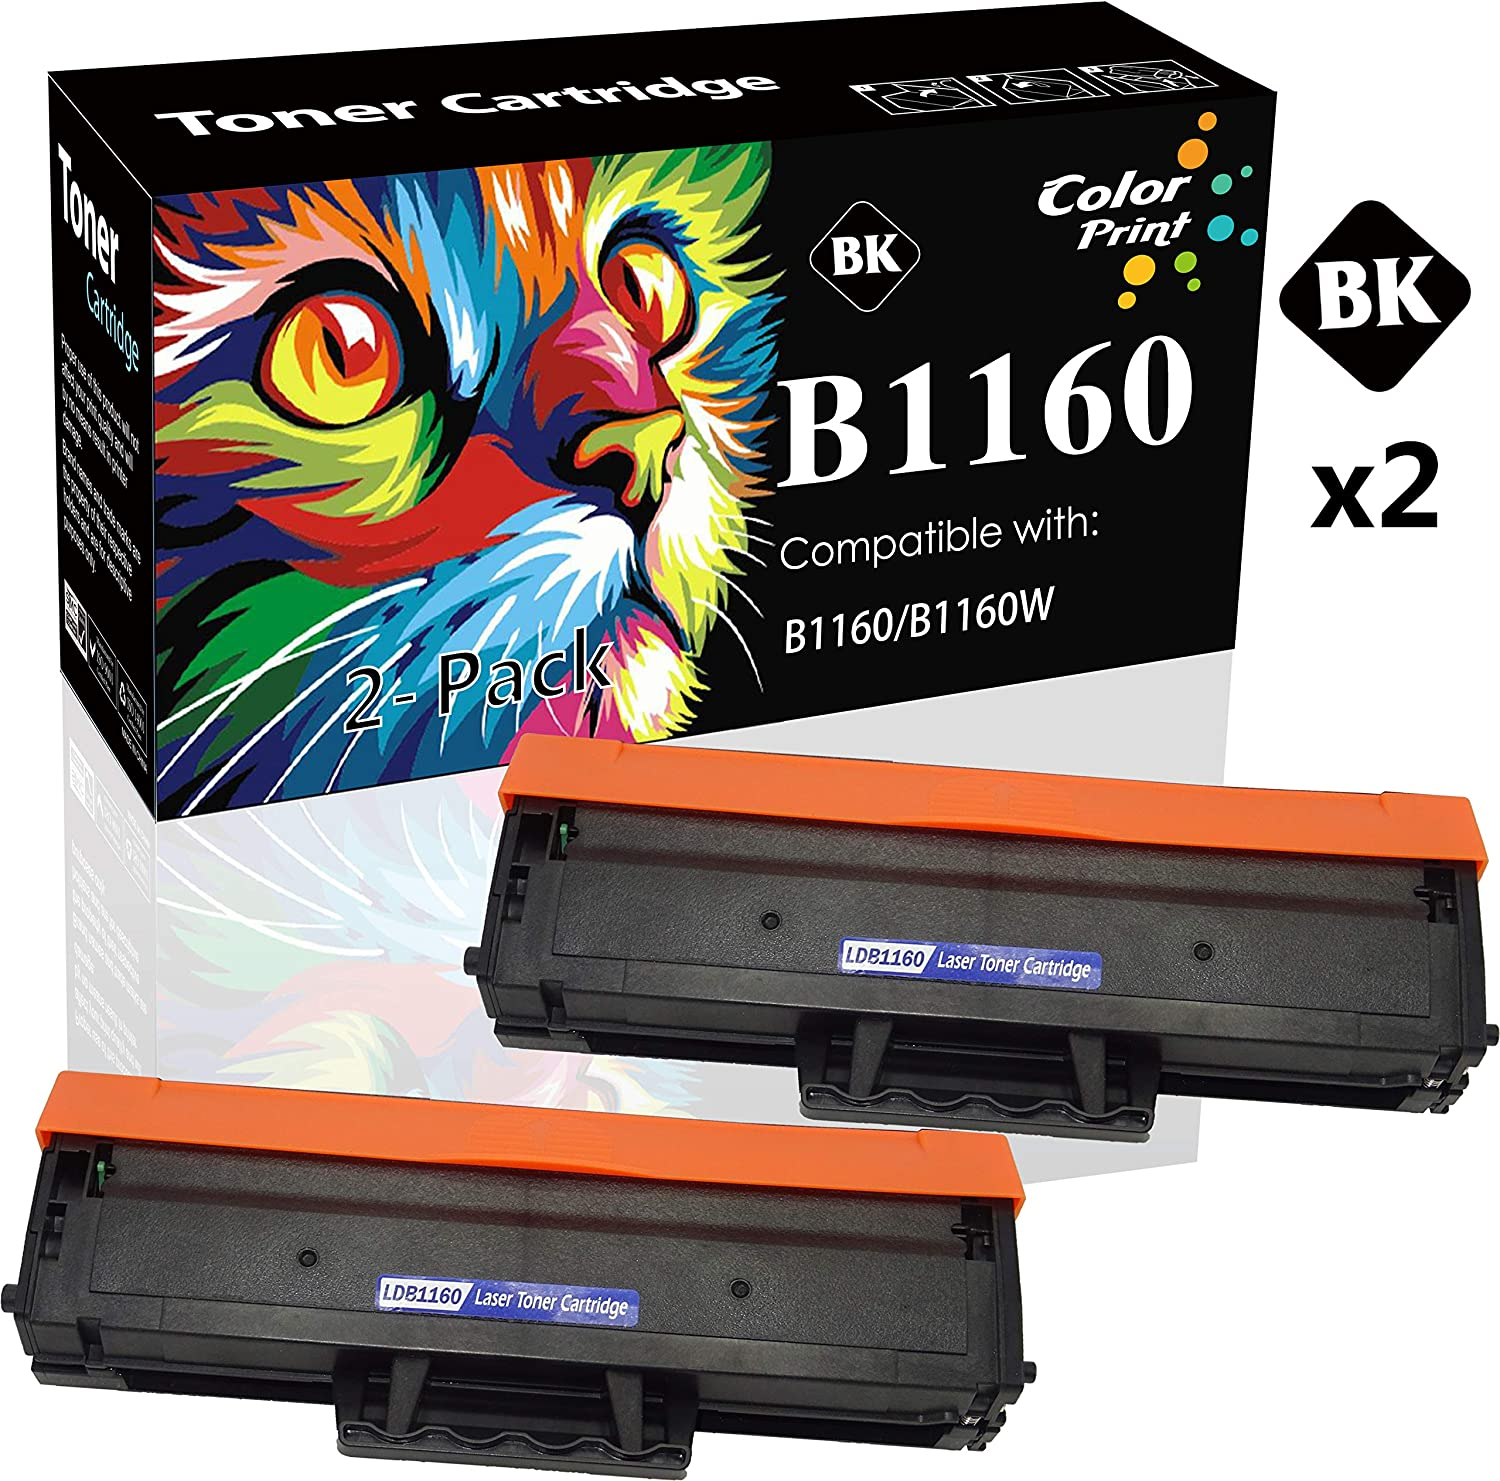 (2-Pack, Black) Compatible Dell YK1PM 331-7335 HF44N HF442 B1160W Toner Cartridge Used for Dell 1160 B1160 B1163w B1165nfw Mono Laser Printers, by ColorPrint